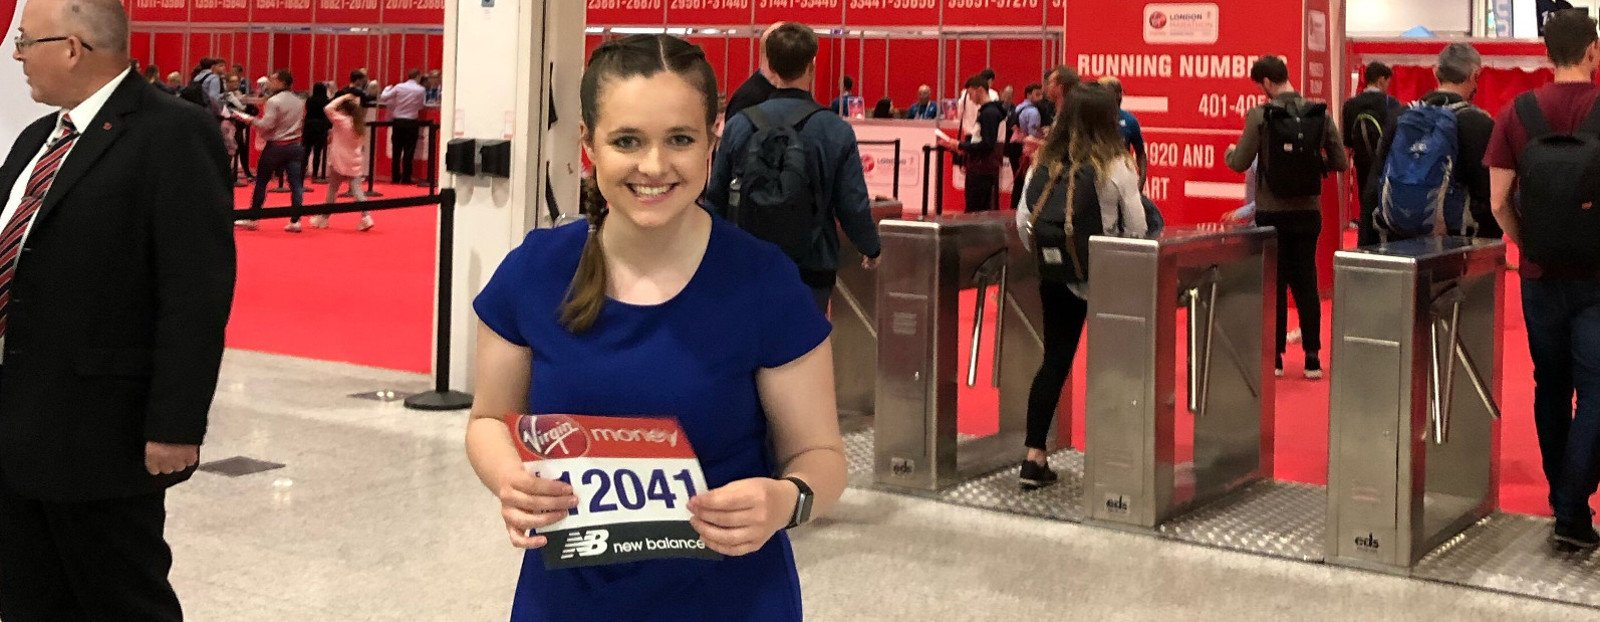 Emily's London Marathon Escapade